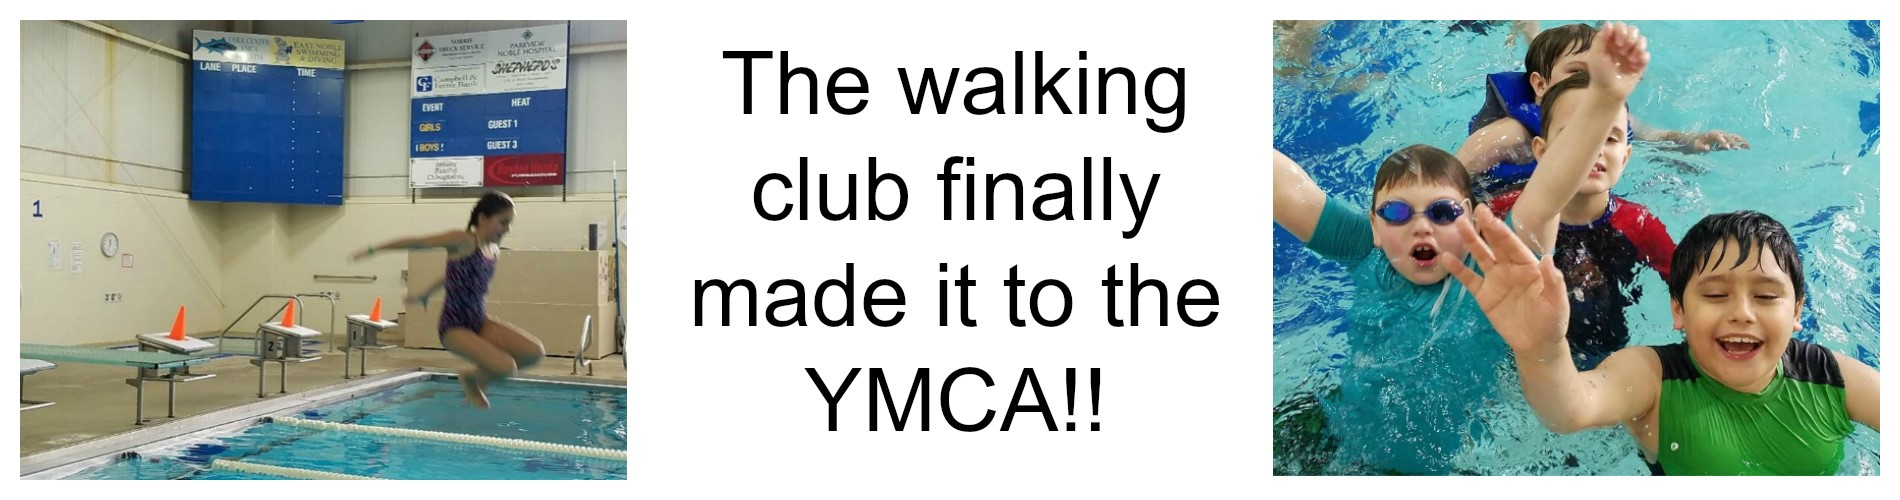 Walking Club at the YMCA